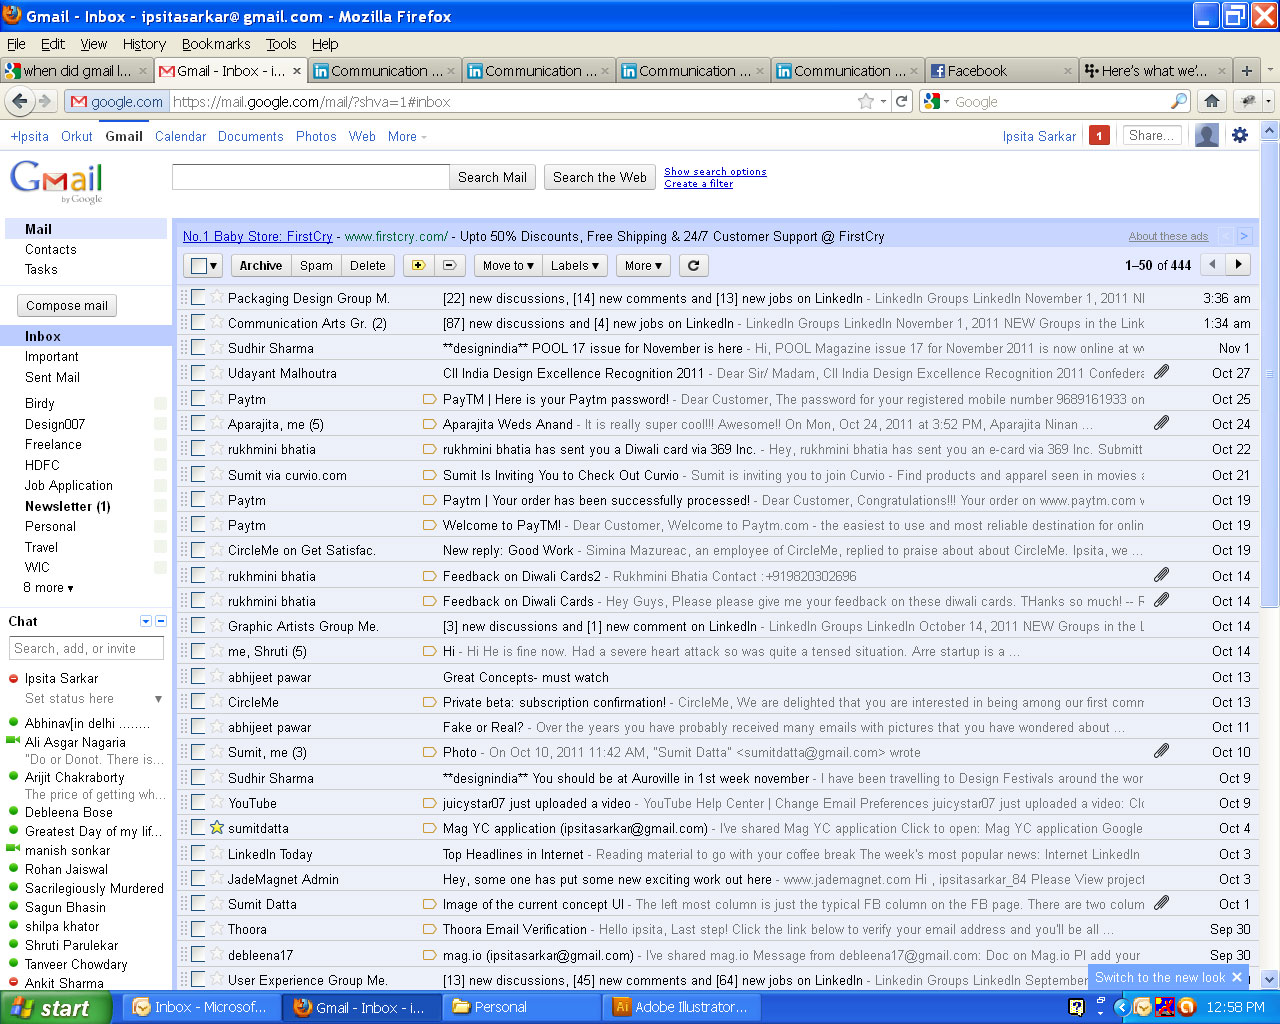 Gmail old theme - There